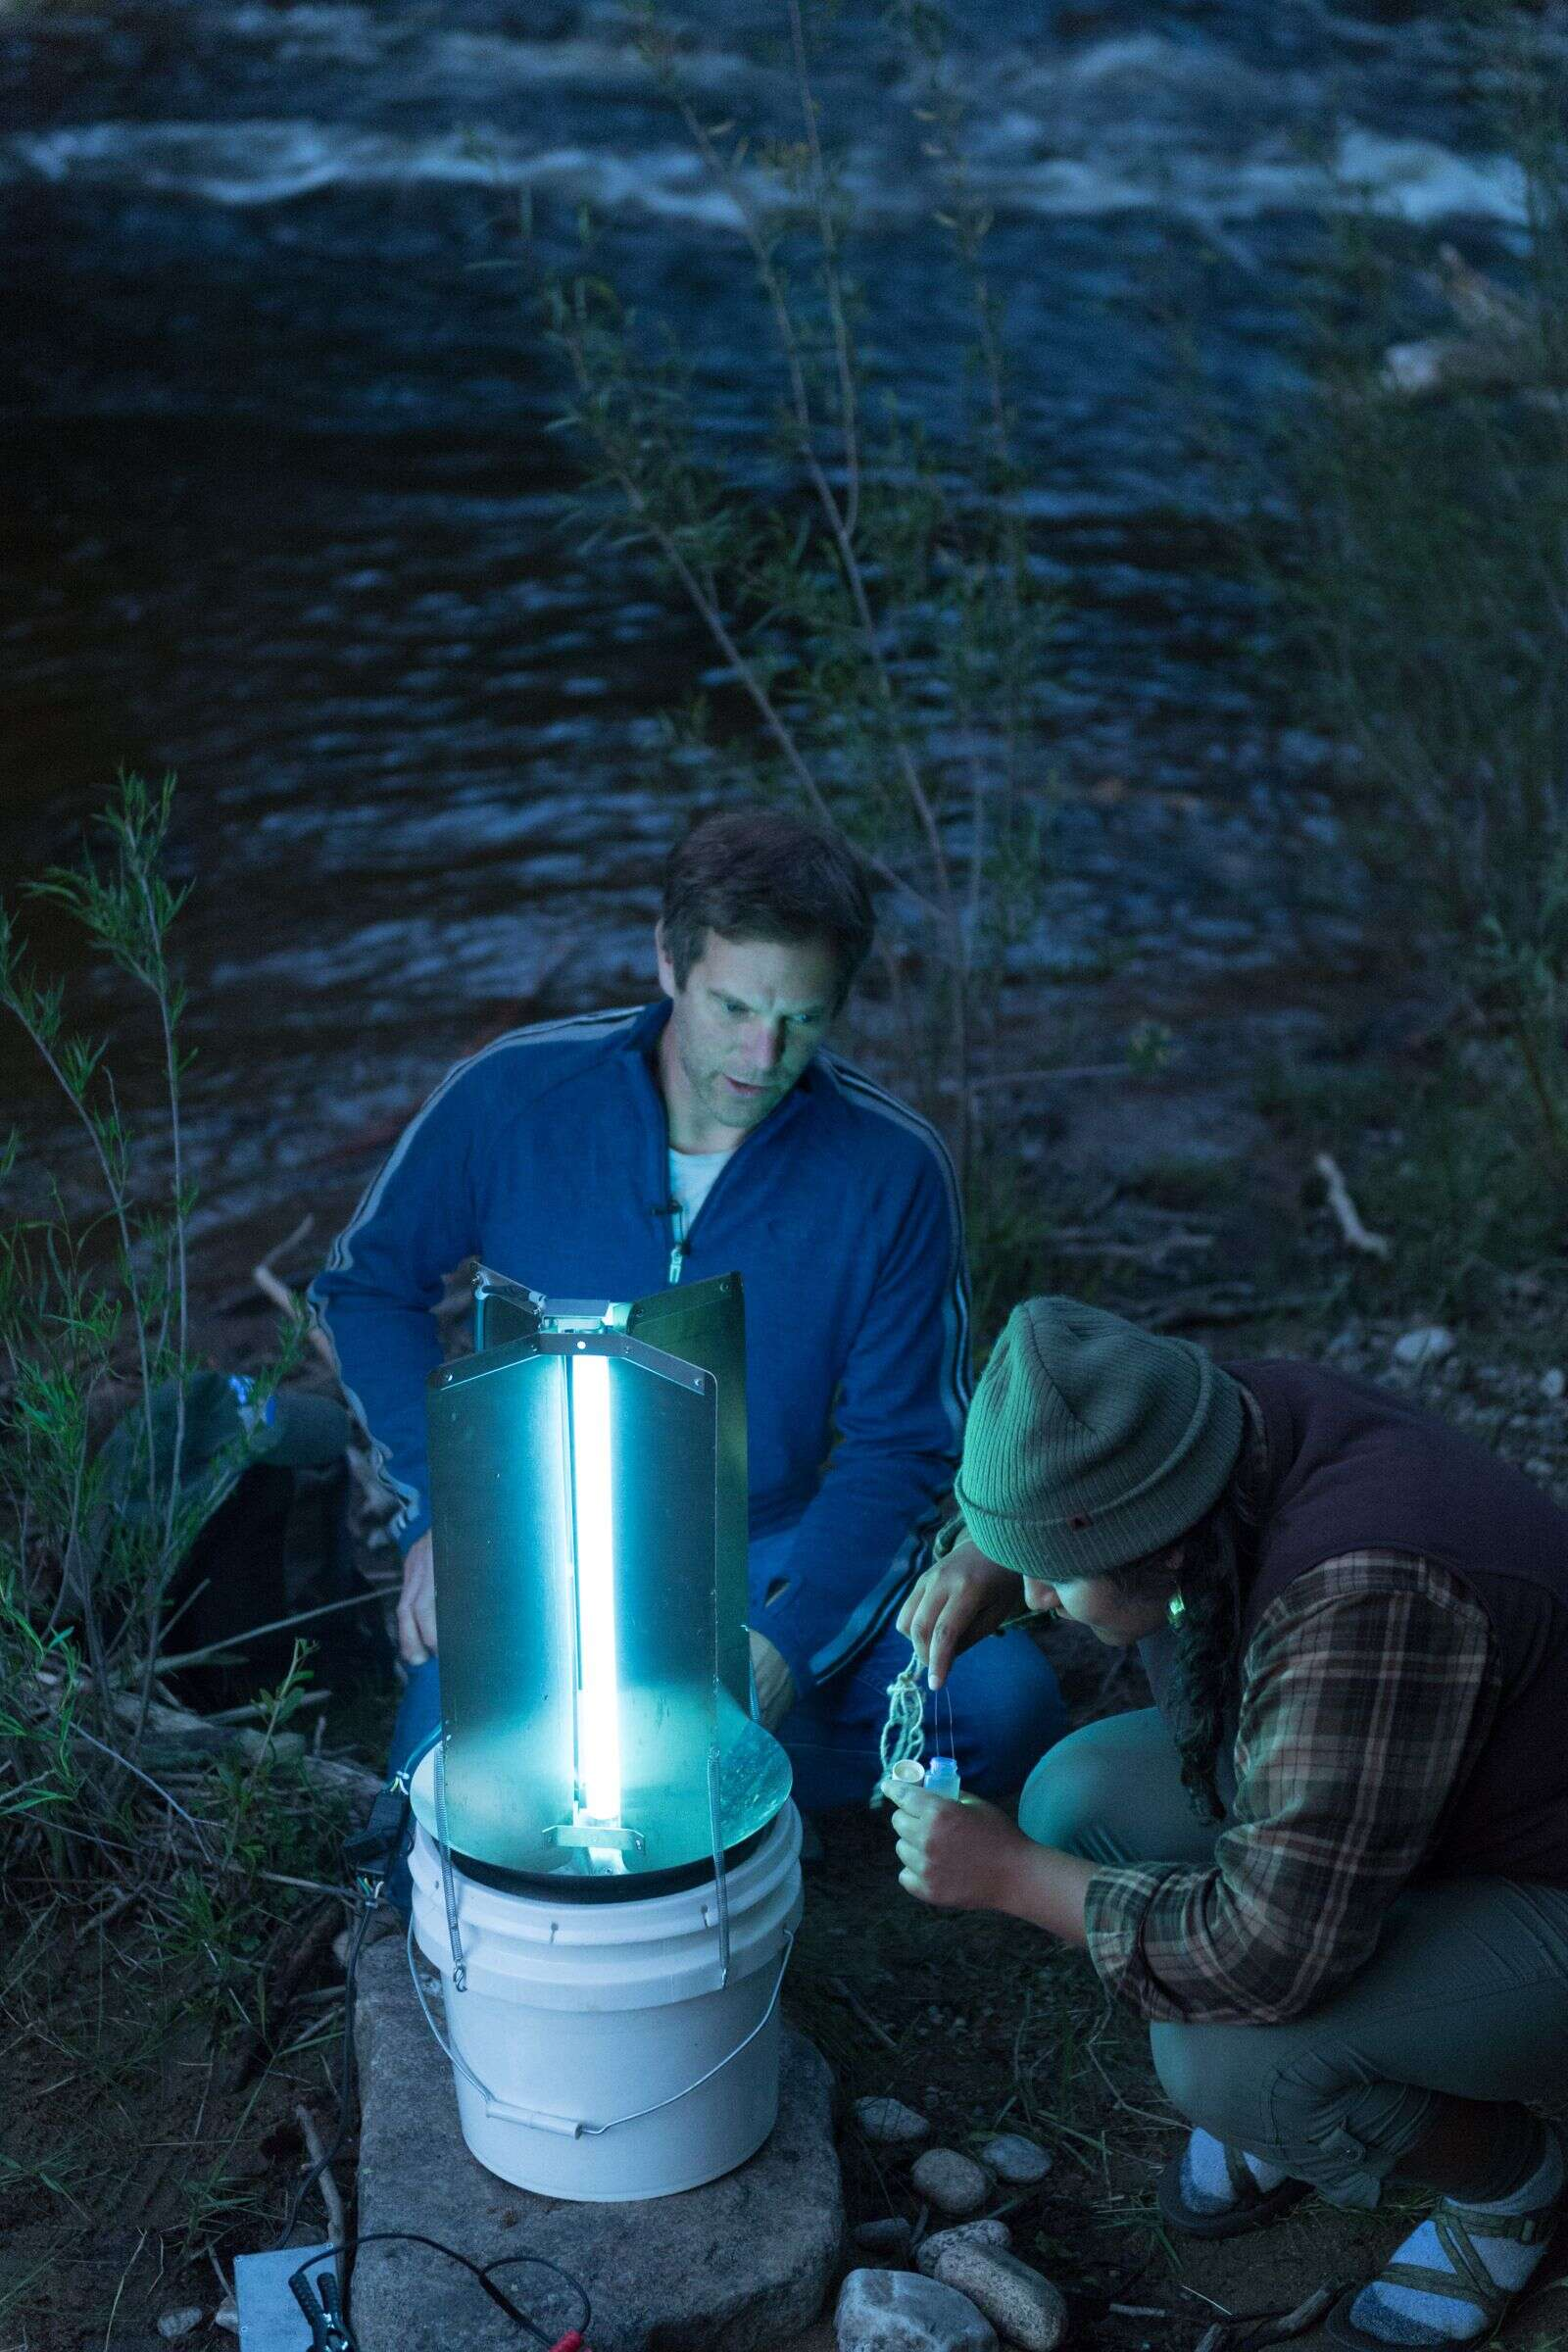 Colorado Parks and Wildlife aquatic researcher Brian Heinhold and Colorado State University Fish, Wildlife and Conservation Biology student Griselda Landa-Posas attract insects with an ultraviolet trap during a BioBlitz at the Aspen Center for Environmental Studies Hallam Lake Preserve, June 26, 2019, a 25-acre site nestled in downtown Aspen. | William A. Cotton/CSU Photography